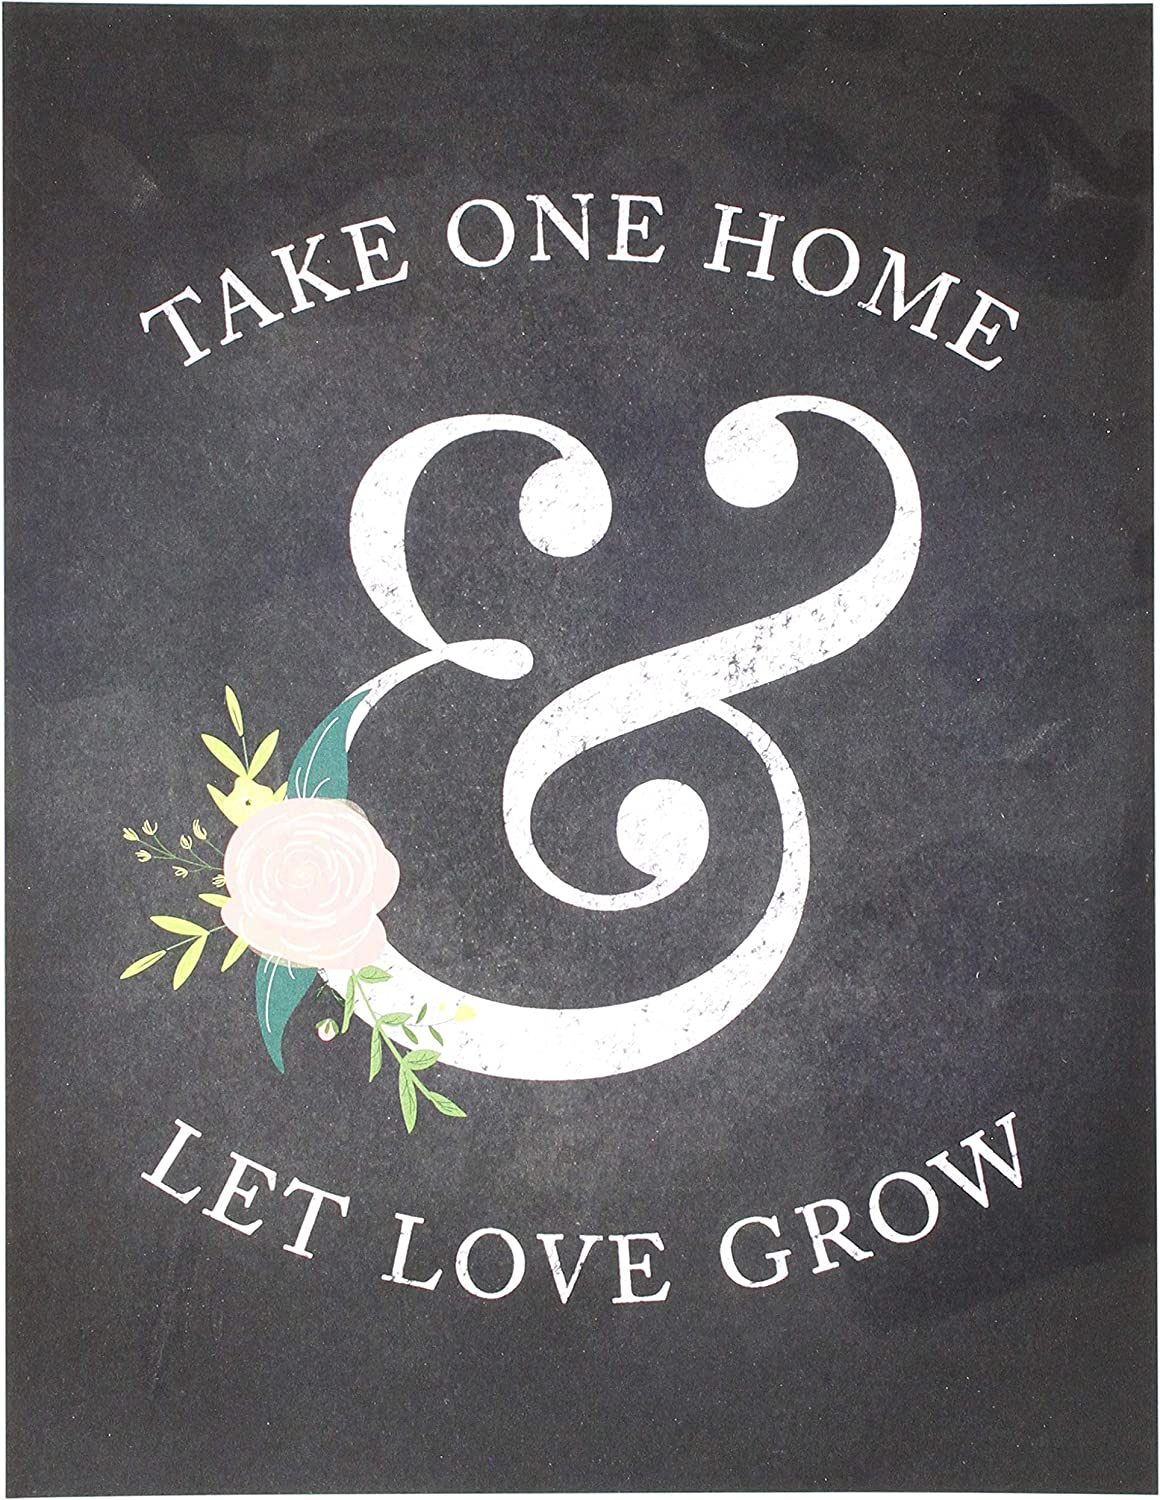 Andaz Press Wedding Party Signs, Chalkboard Pink Coral Floral Roses Print, 8.5x11-inch, Please Take One Home and Let Love Grow Plant Seed Favors Table Sign, 1-Pack